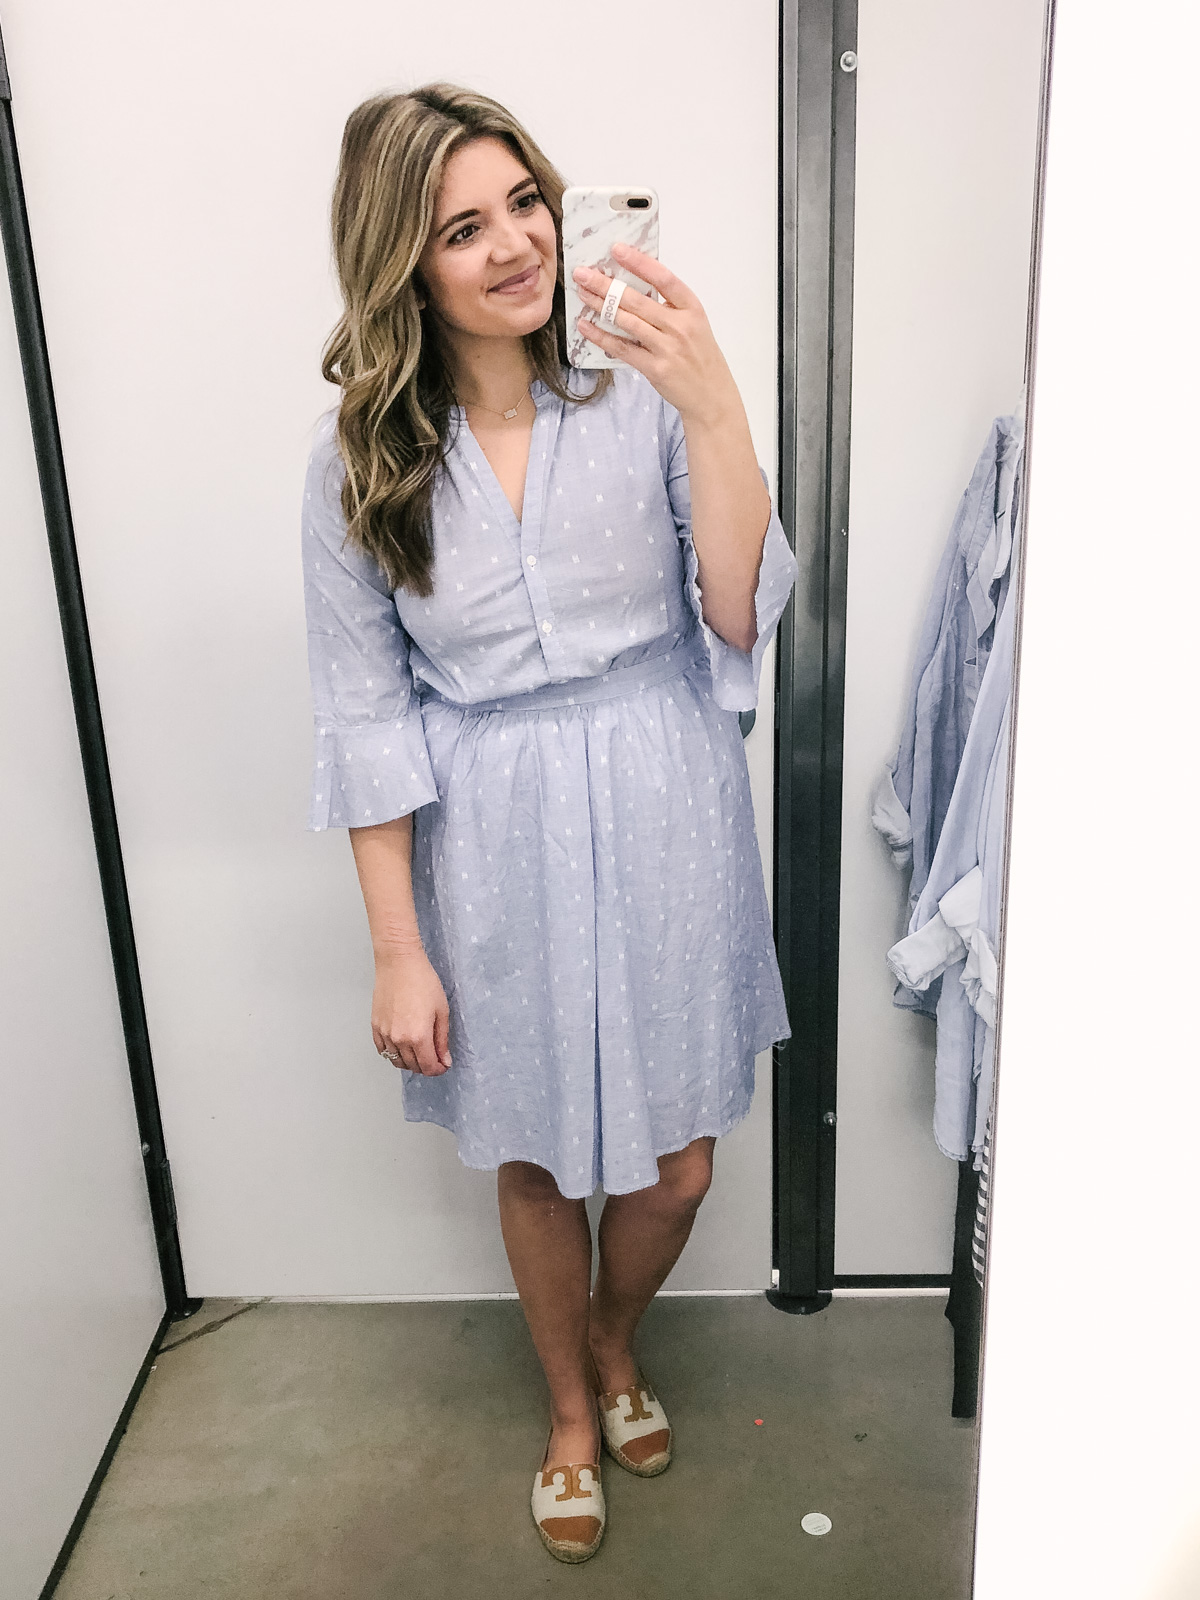 Old Navy spring 2018 try-on session | See the full try-on session + Old Navy spring reviews at bylaurenm.com!